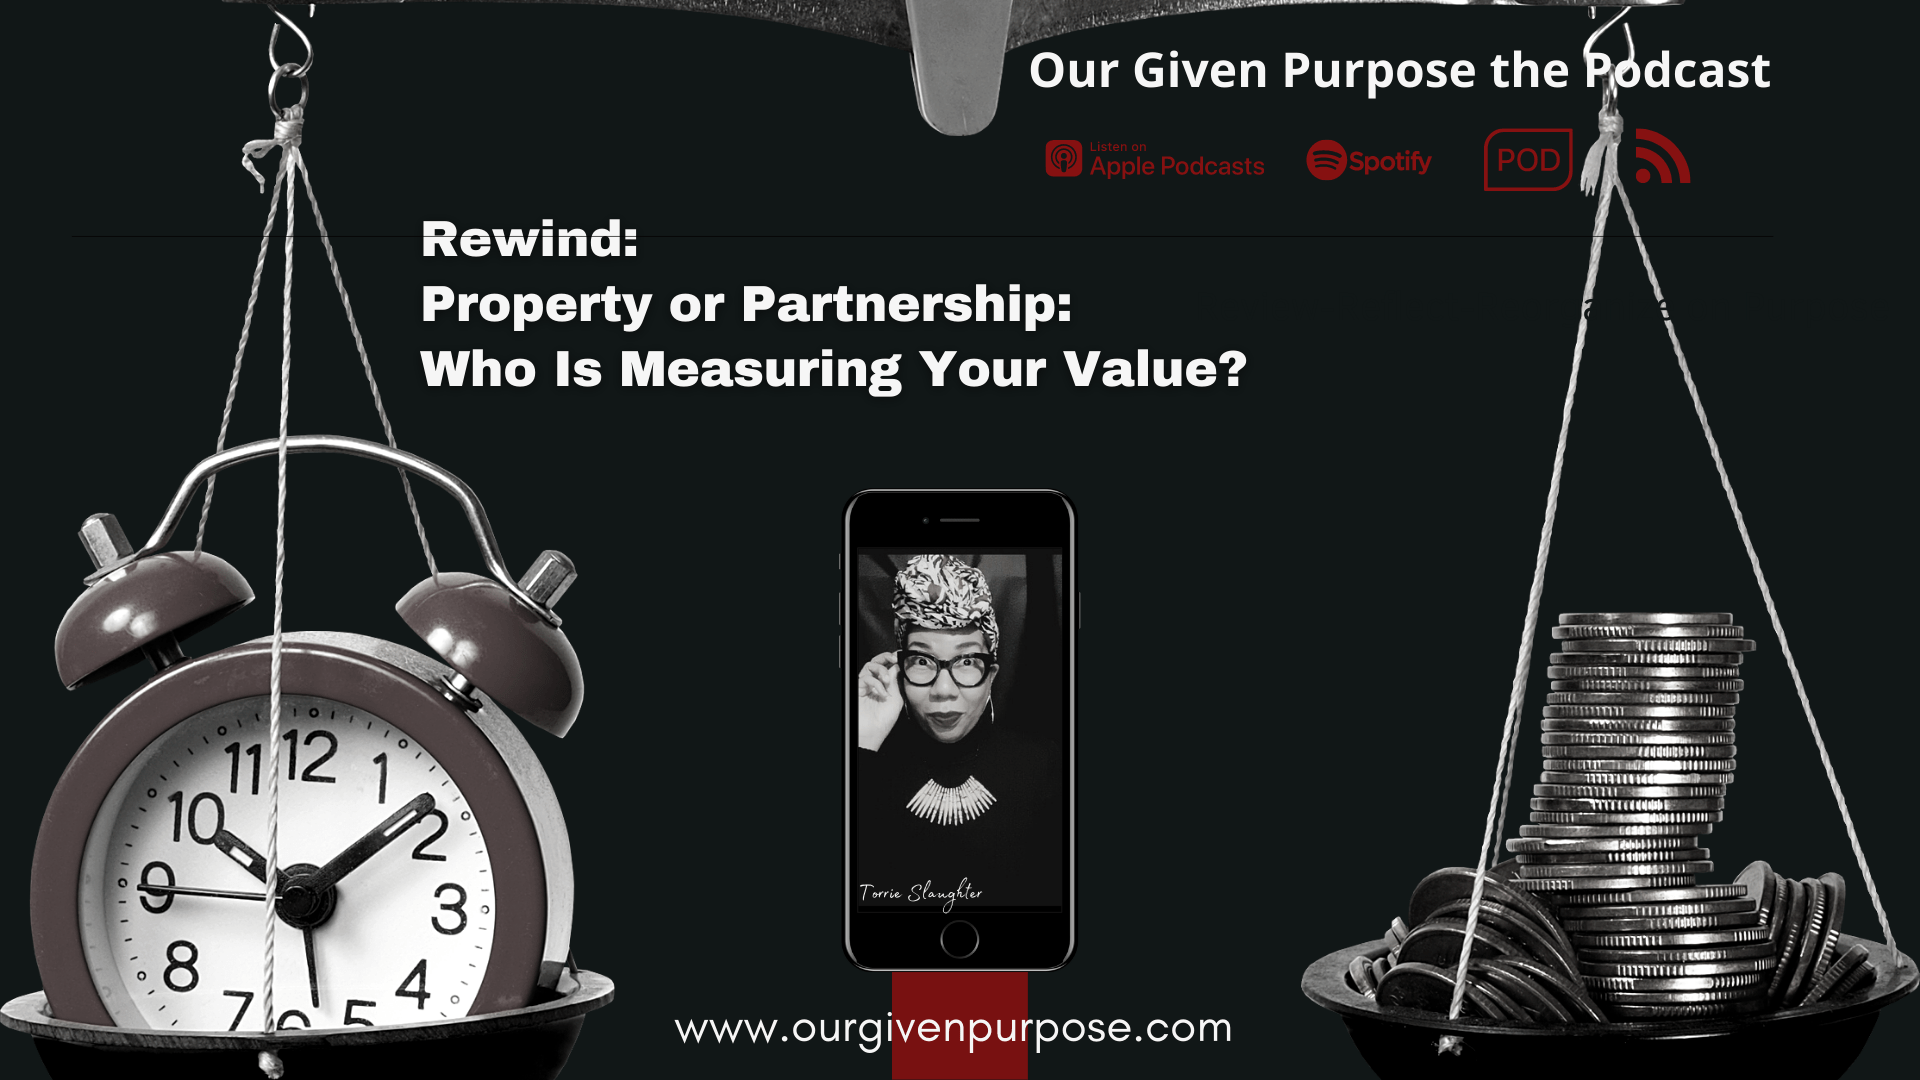 REWIND- Property or Partnership: Who Is Measuring Your Value?